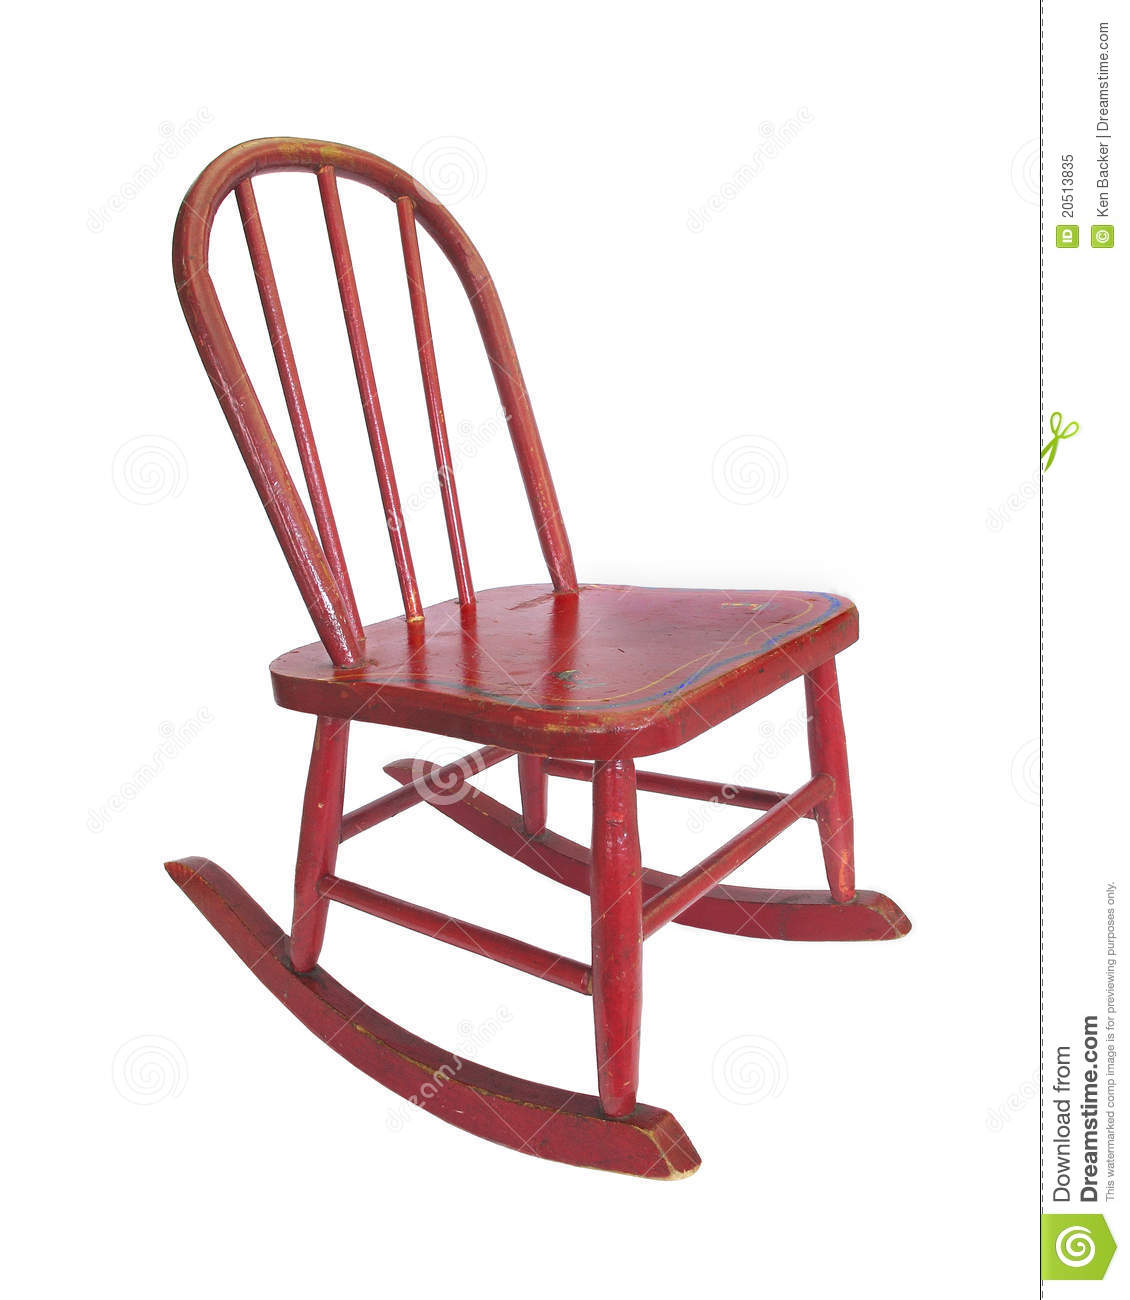 Small Rocking Chair Small Red Rocking Chair Royalty Free Stock Photo Image